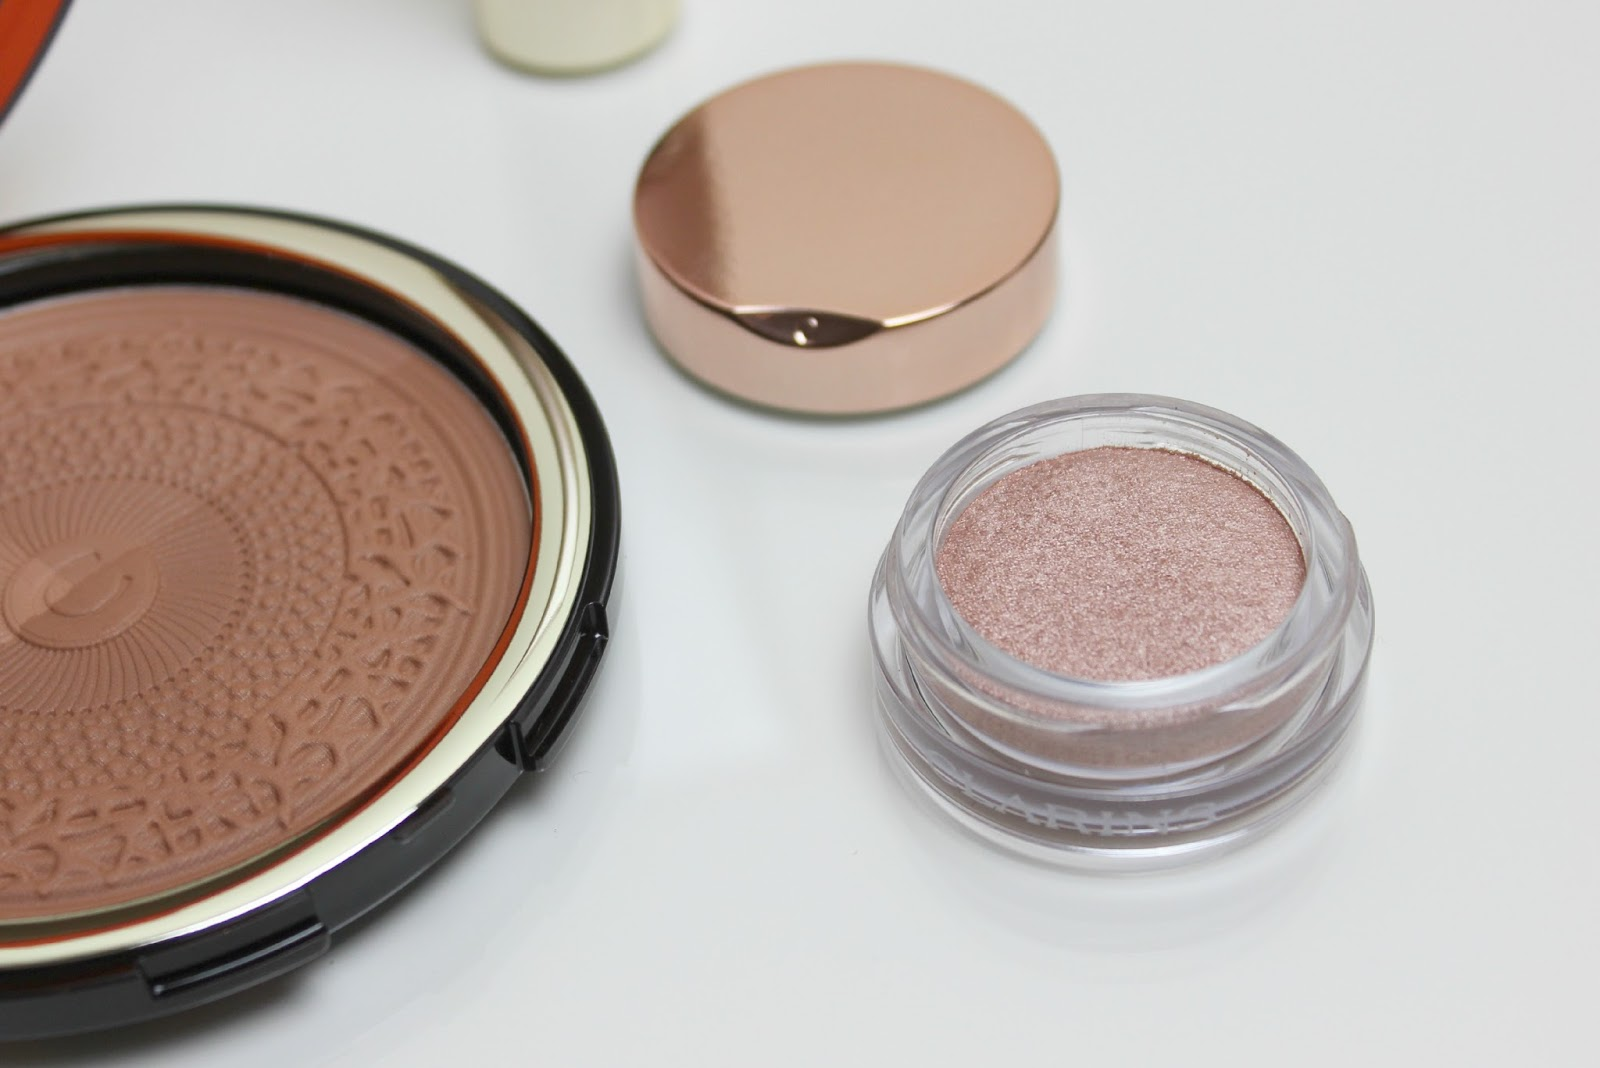 A picture of Clarins Ombre Iridescente Cream-to-Powder Eyeshadow in 01 Aquatic Rose